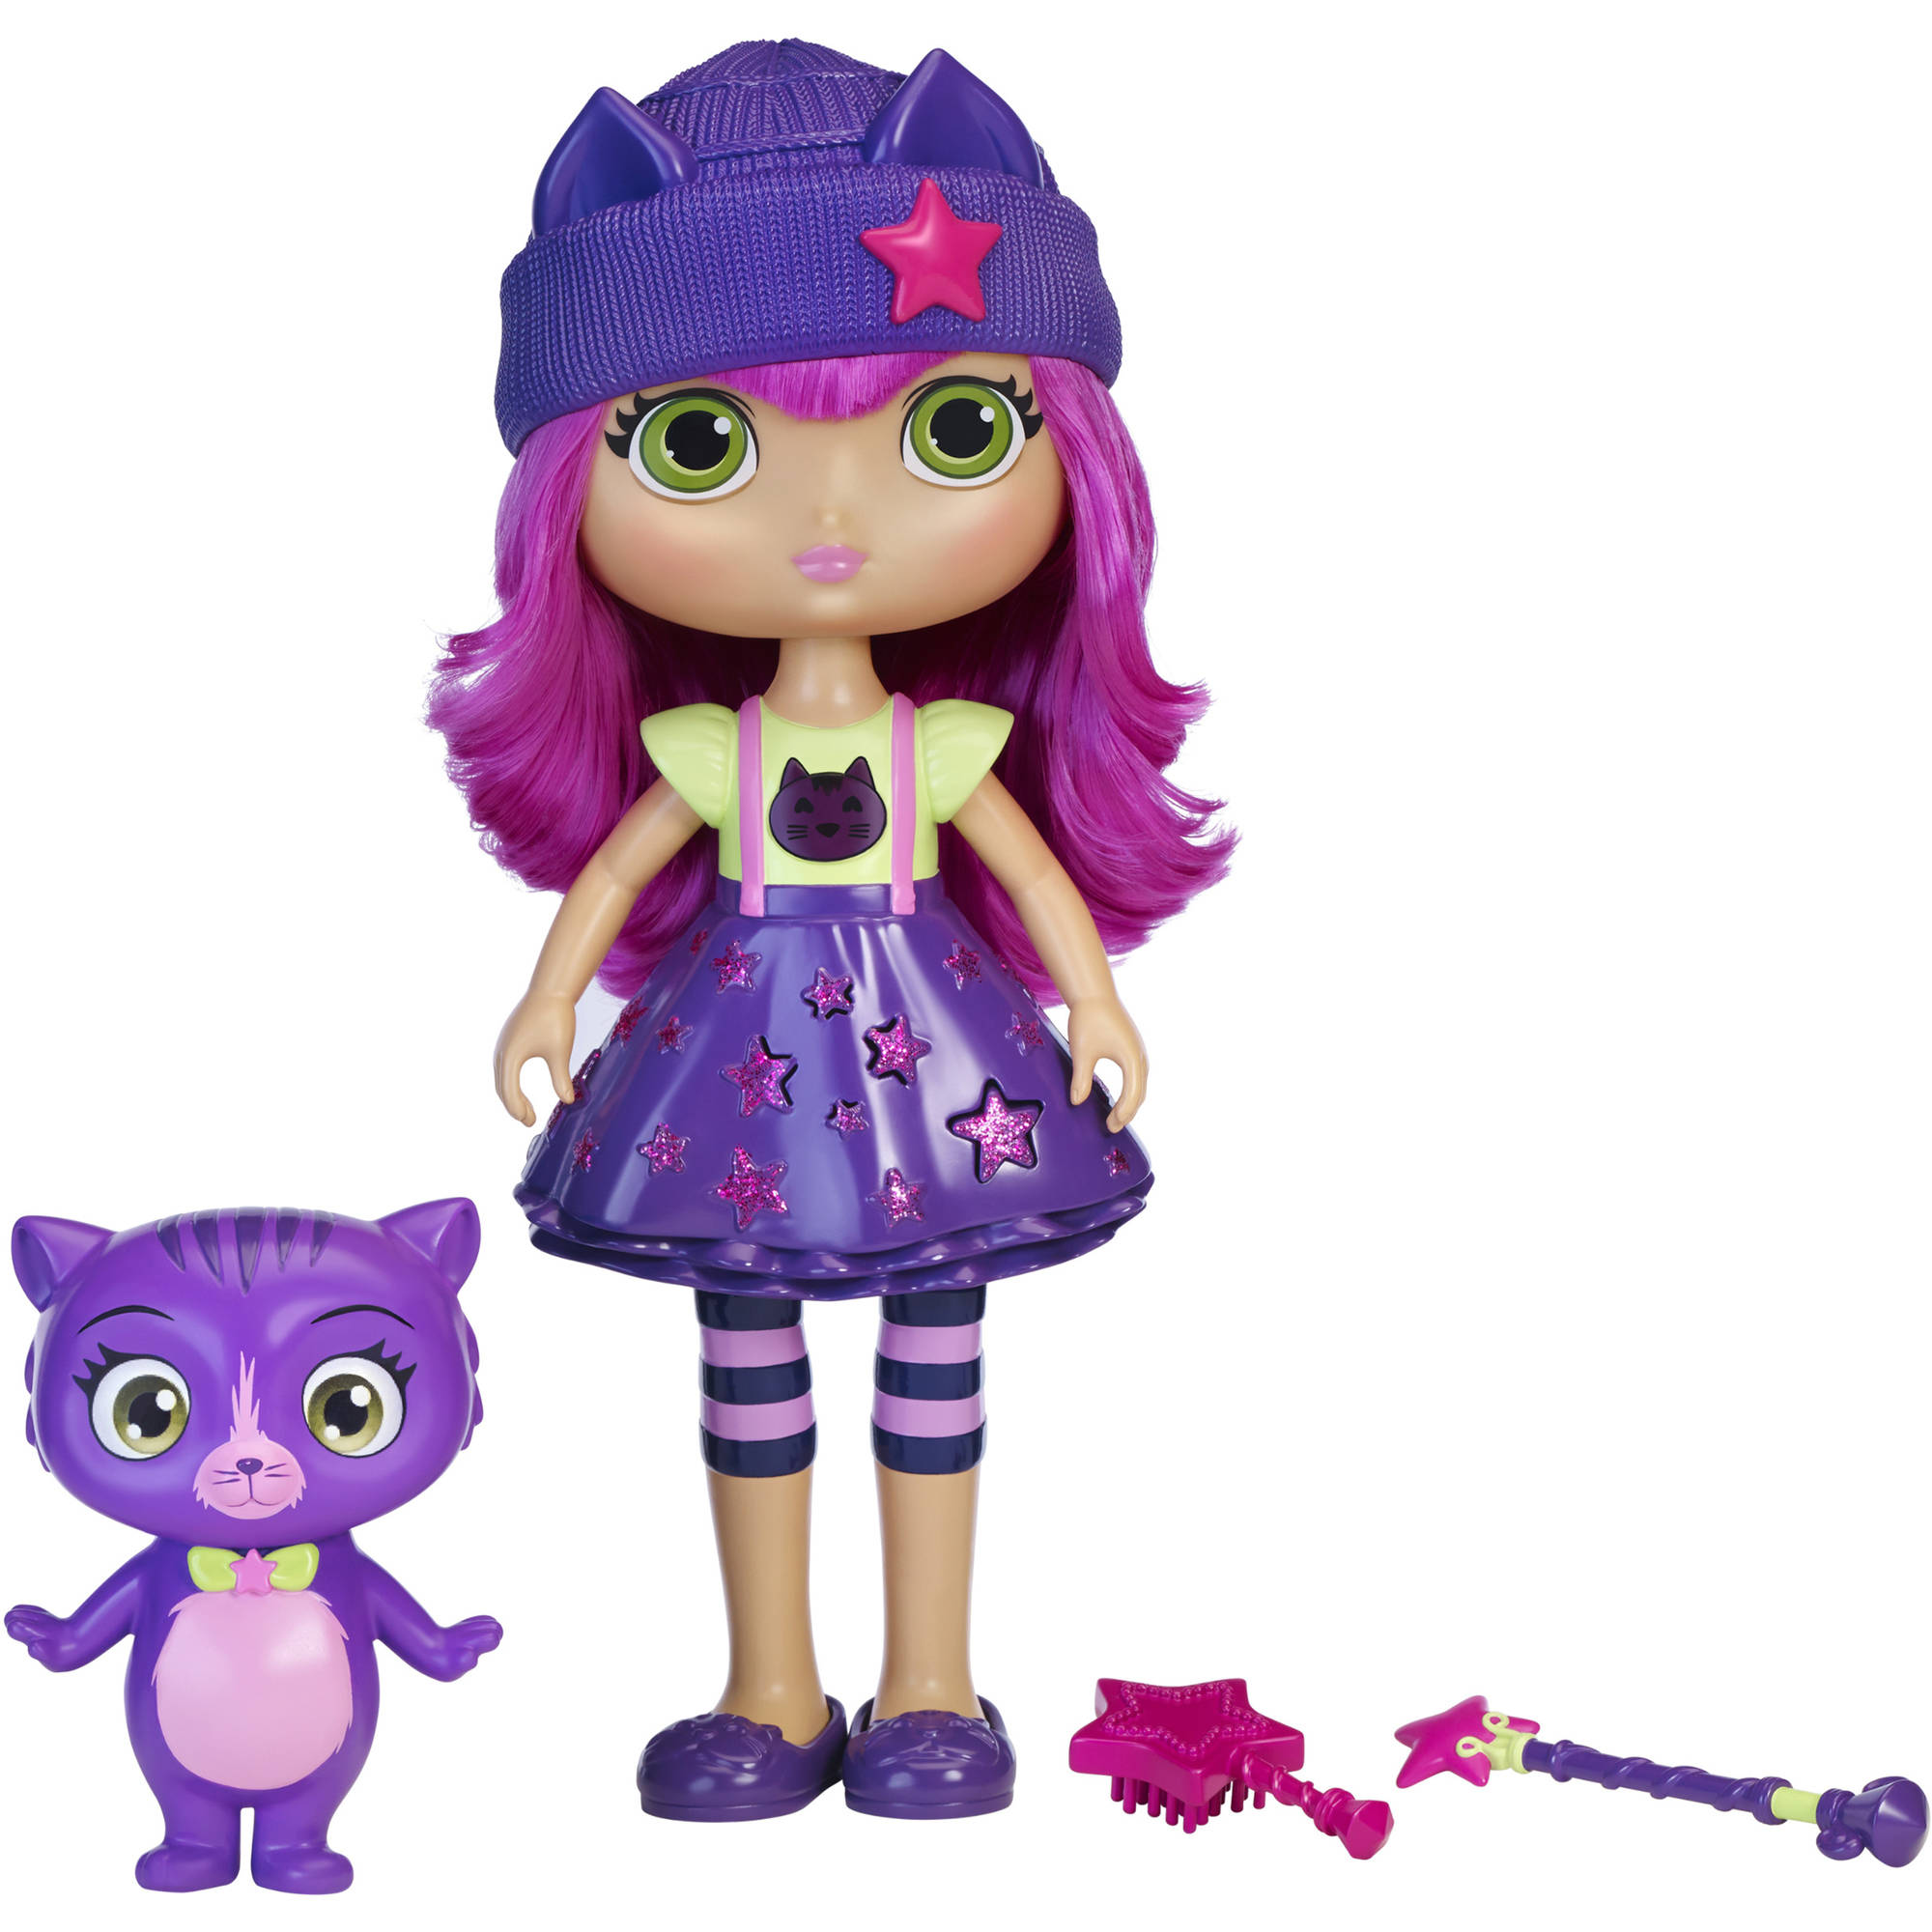 Little Charmers Hazel Magic Doll by SPIN MASTER